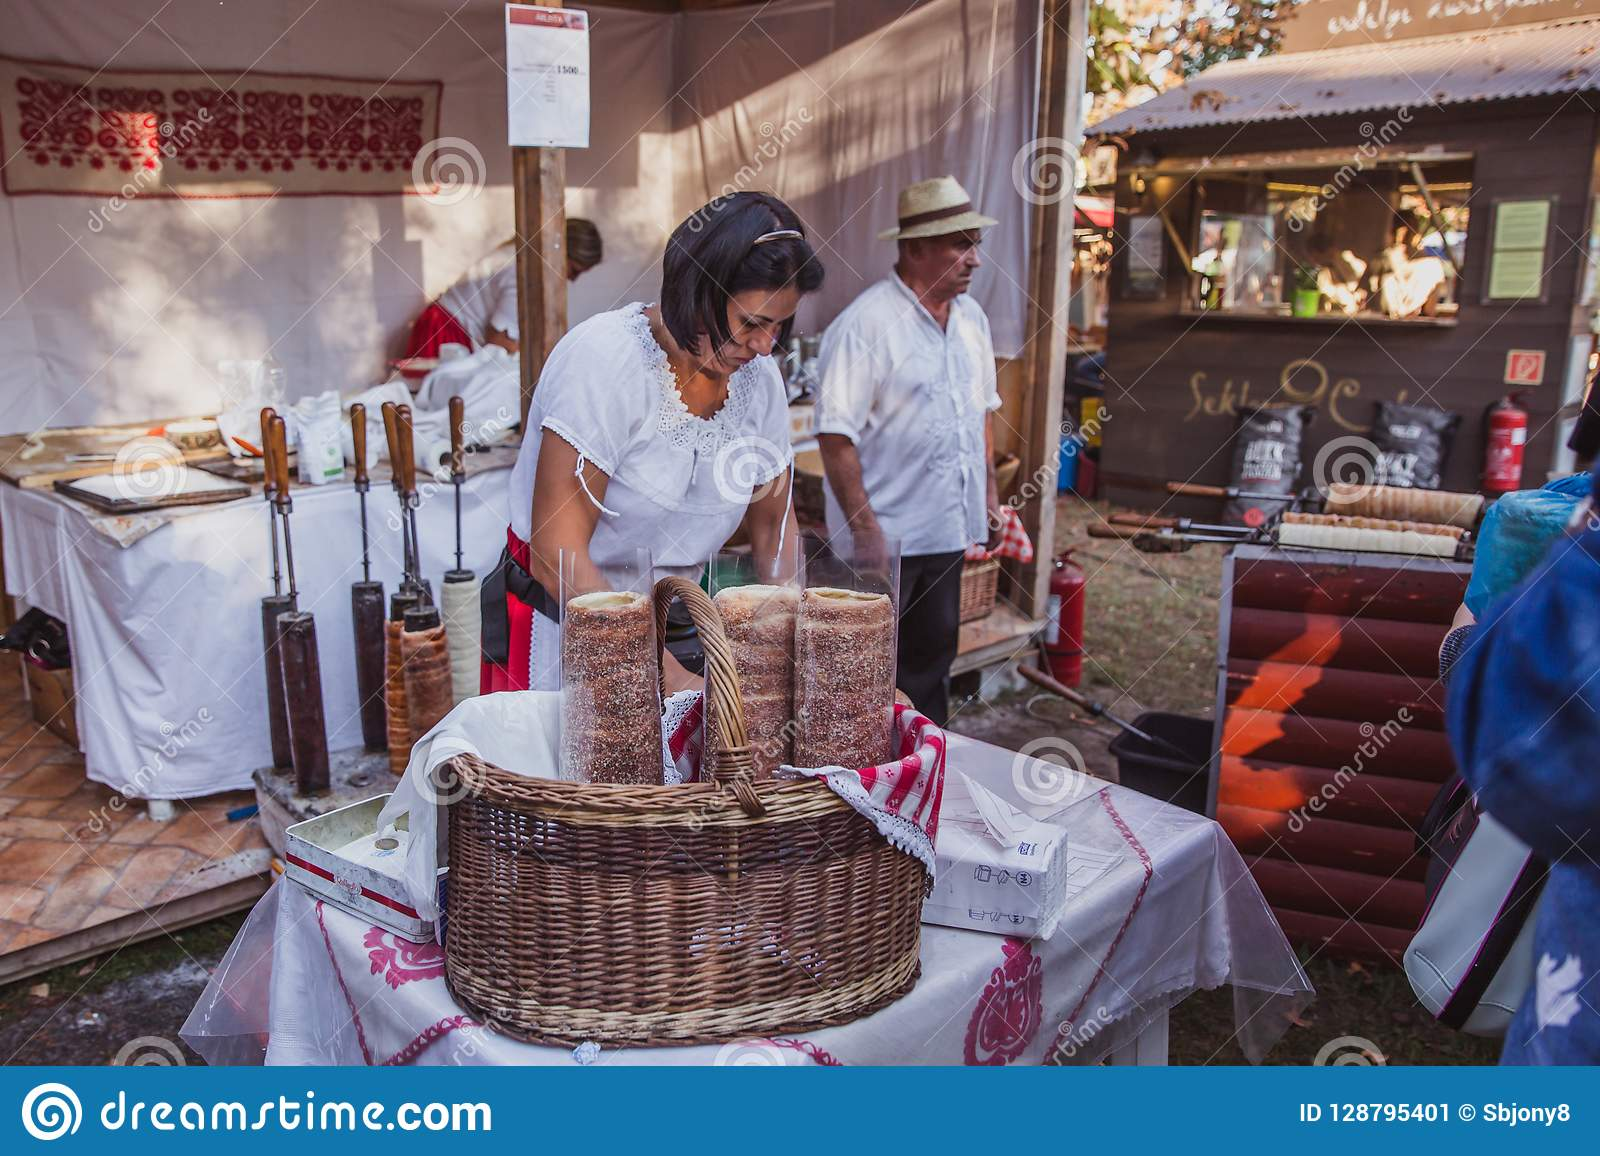 BUDAPEST, HUNGARY - OKTOBER 14, 2018: K Rt Skal Cs Fesztiv L 2018. Bakers  Preparing And Selling Traditional Hungarian Pastry Calle Editorial Photo -  Image of fair, capital: 128795401